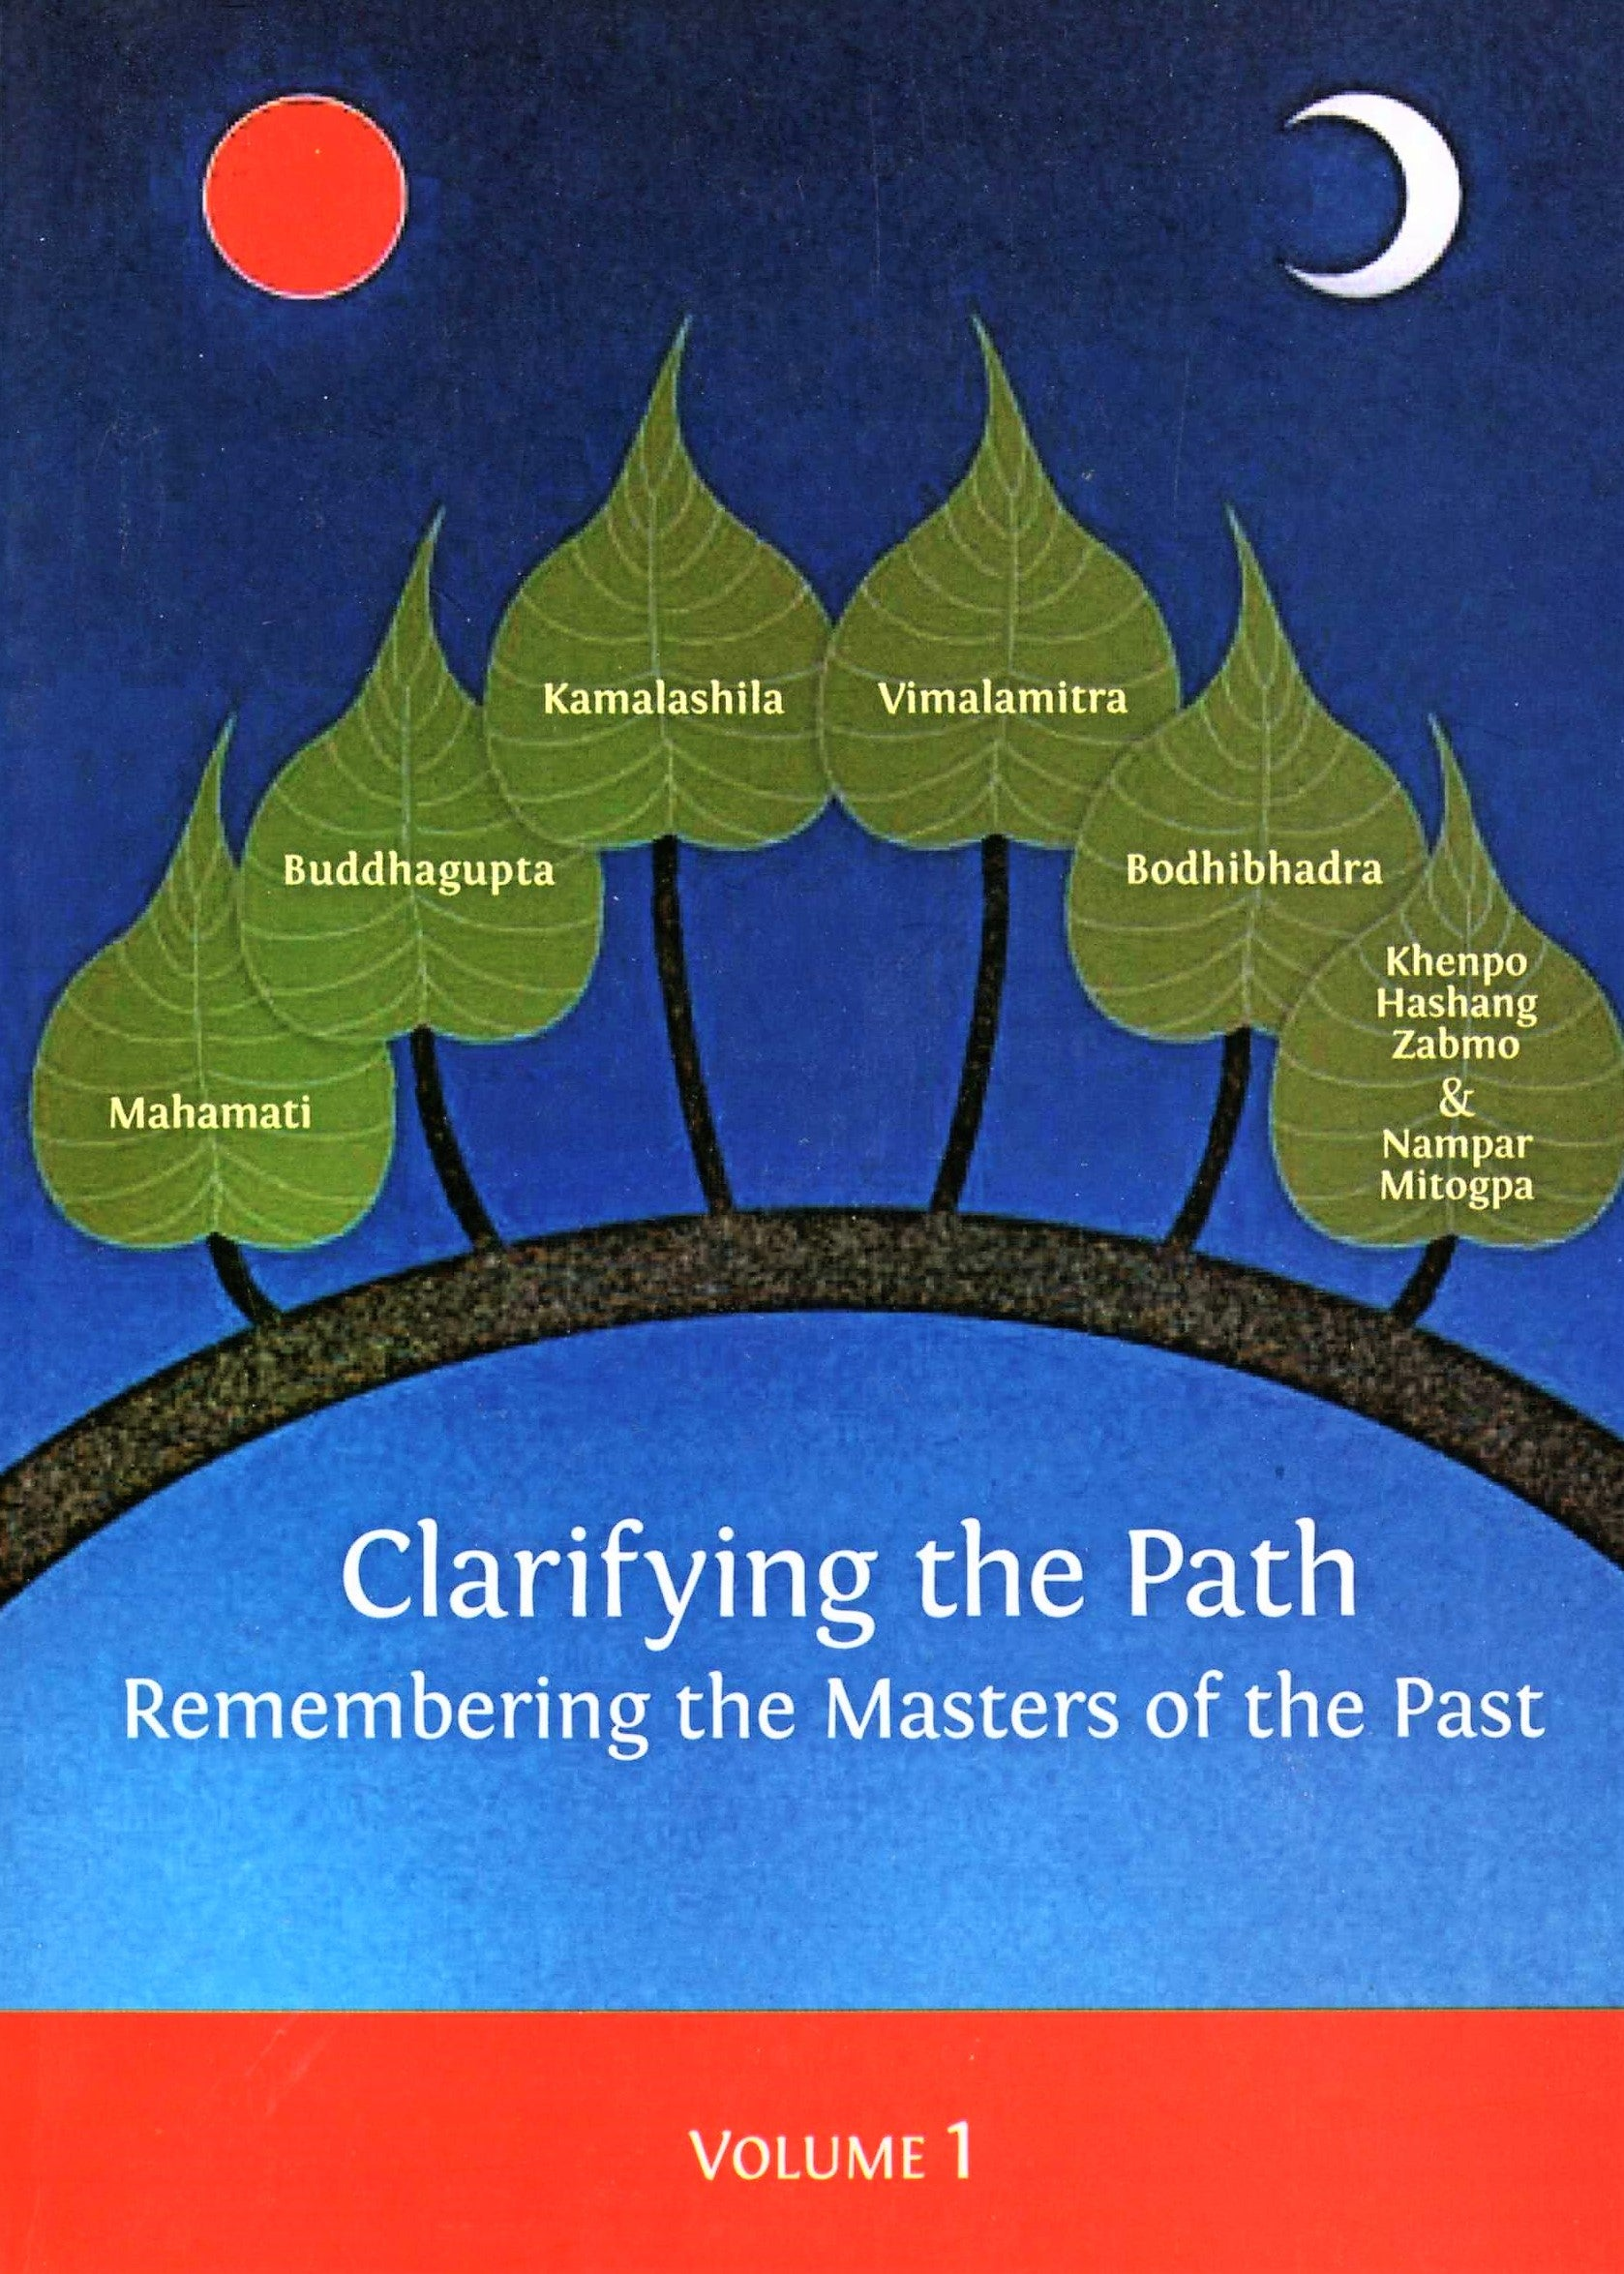 Clarifying the Path, Remembering Masters of the Past